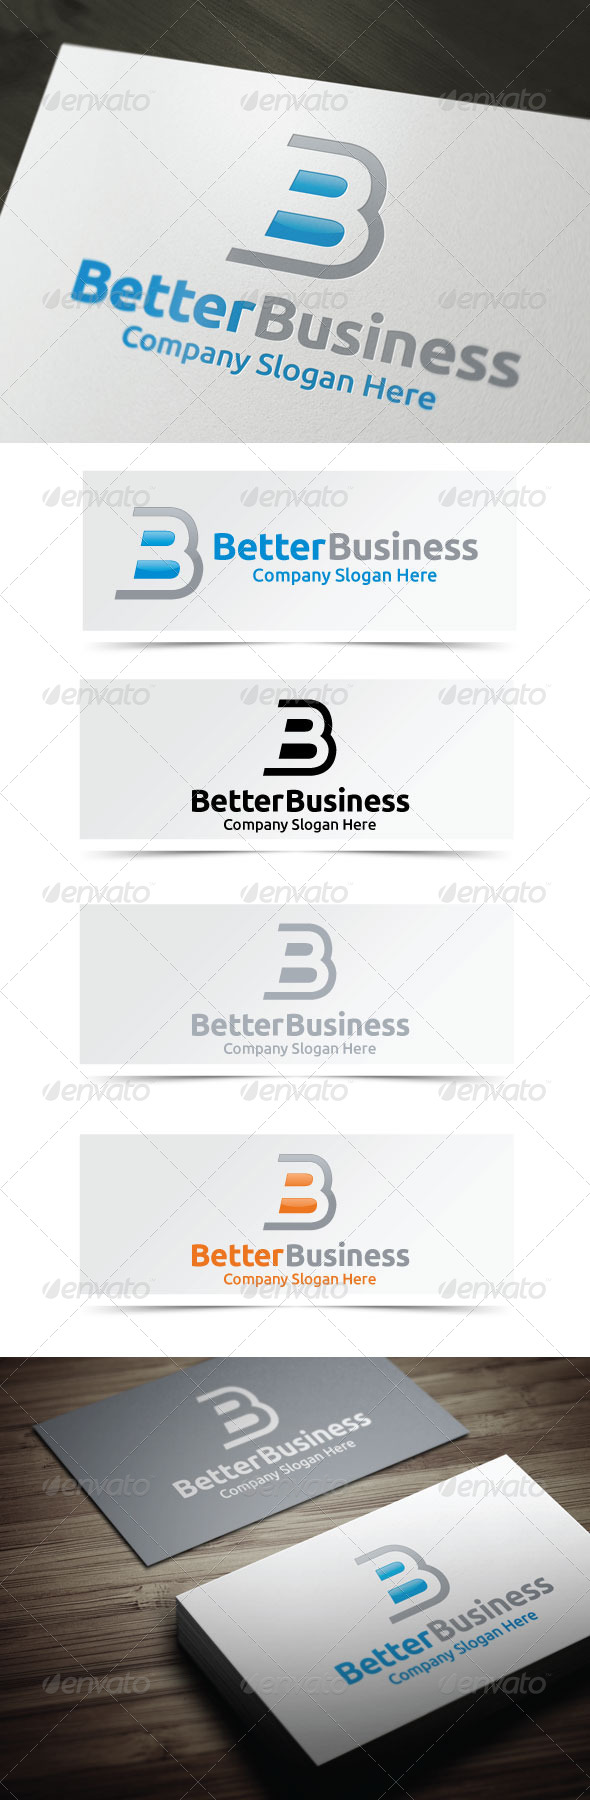 GraphicRiver Better Business 4158488